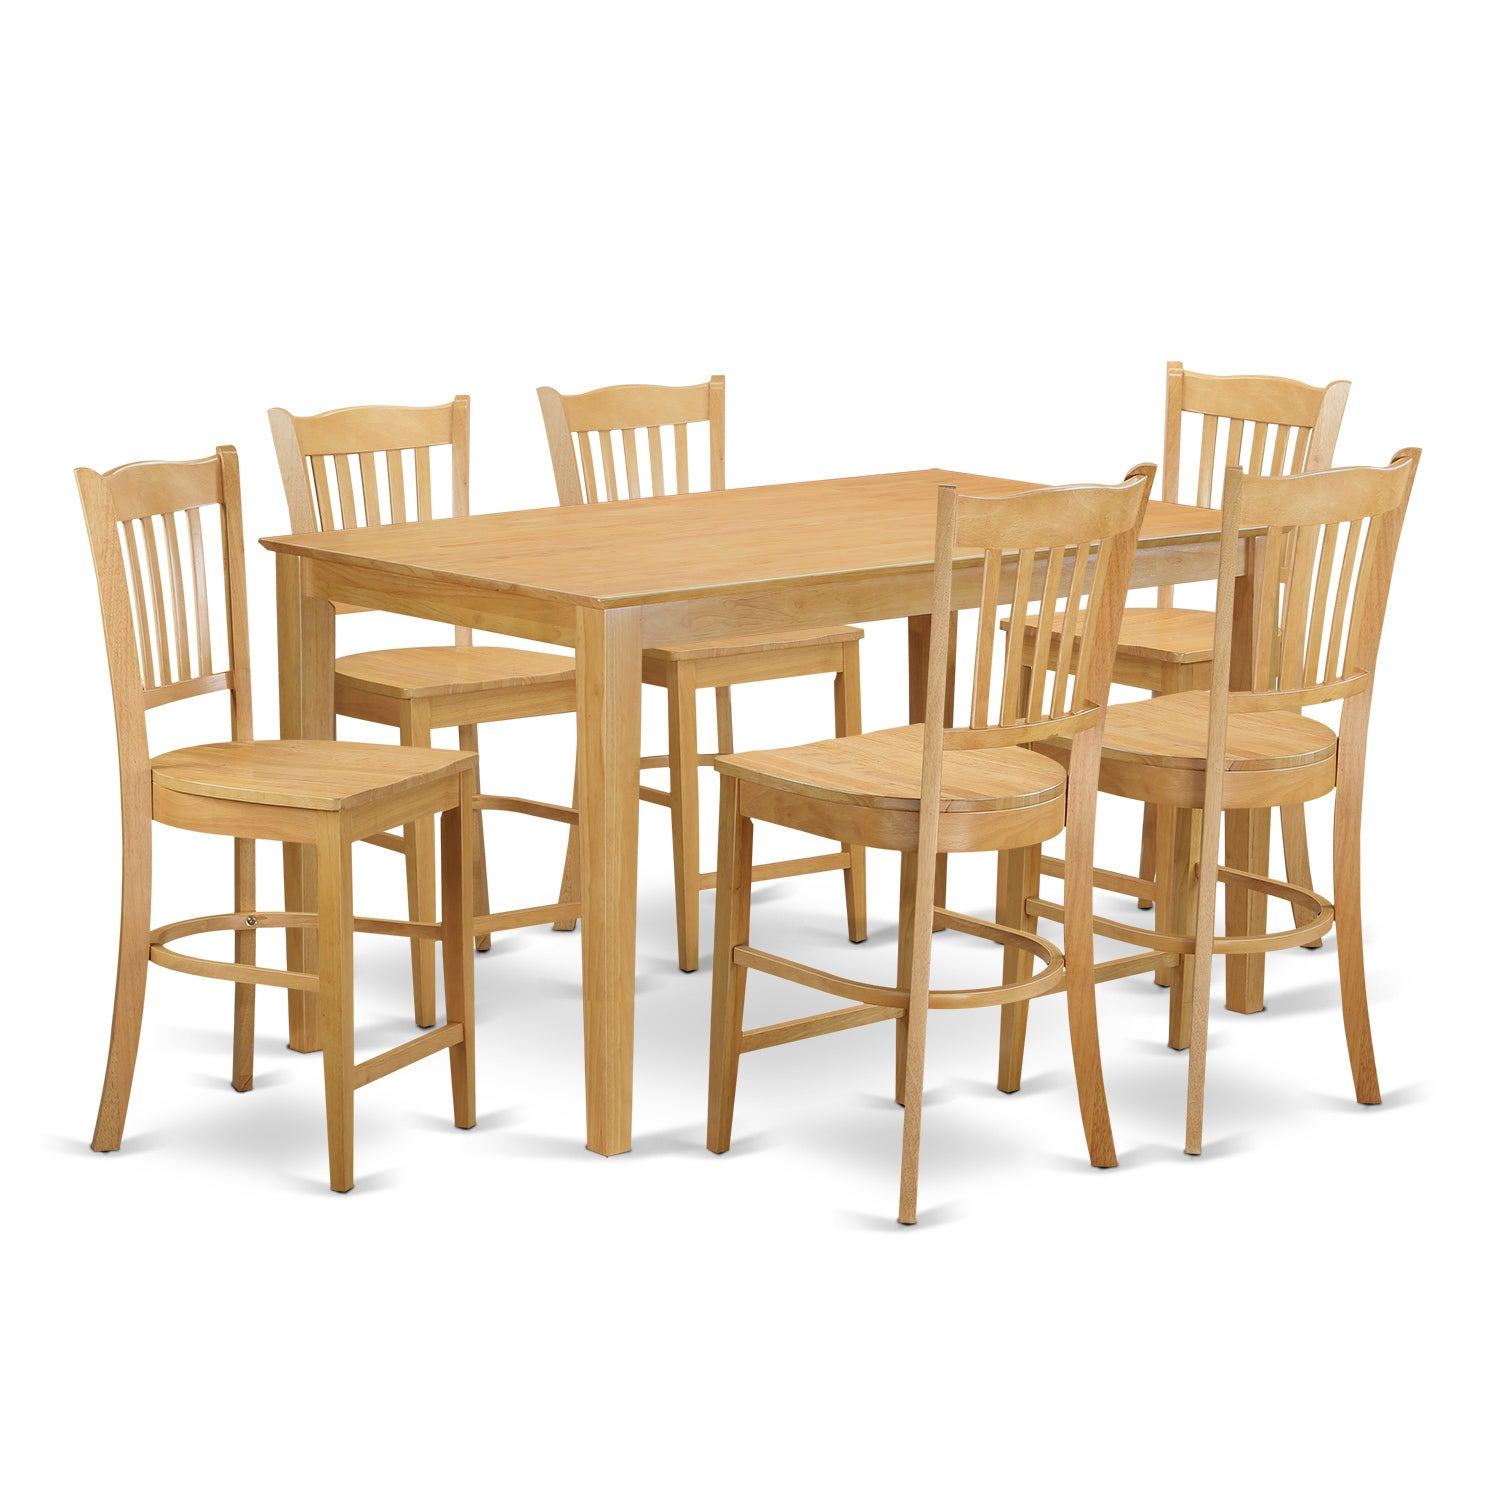 Oak Finish Rubberwood 7-piece Dining Room Pub Set with Co...